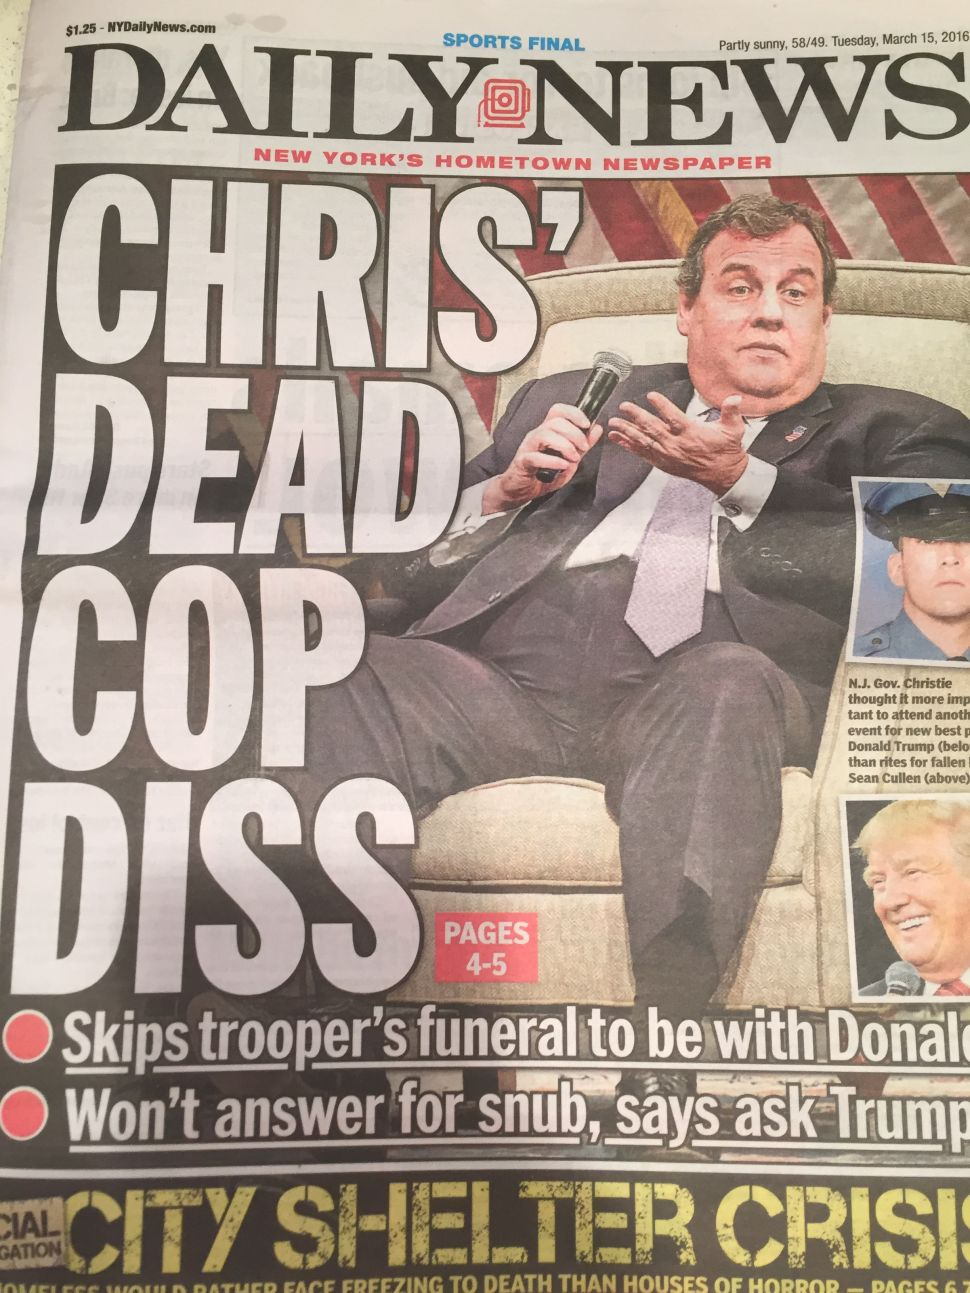 Daily News Front Page Rips Christie